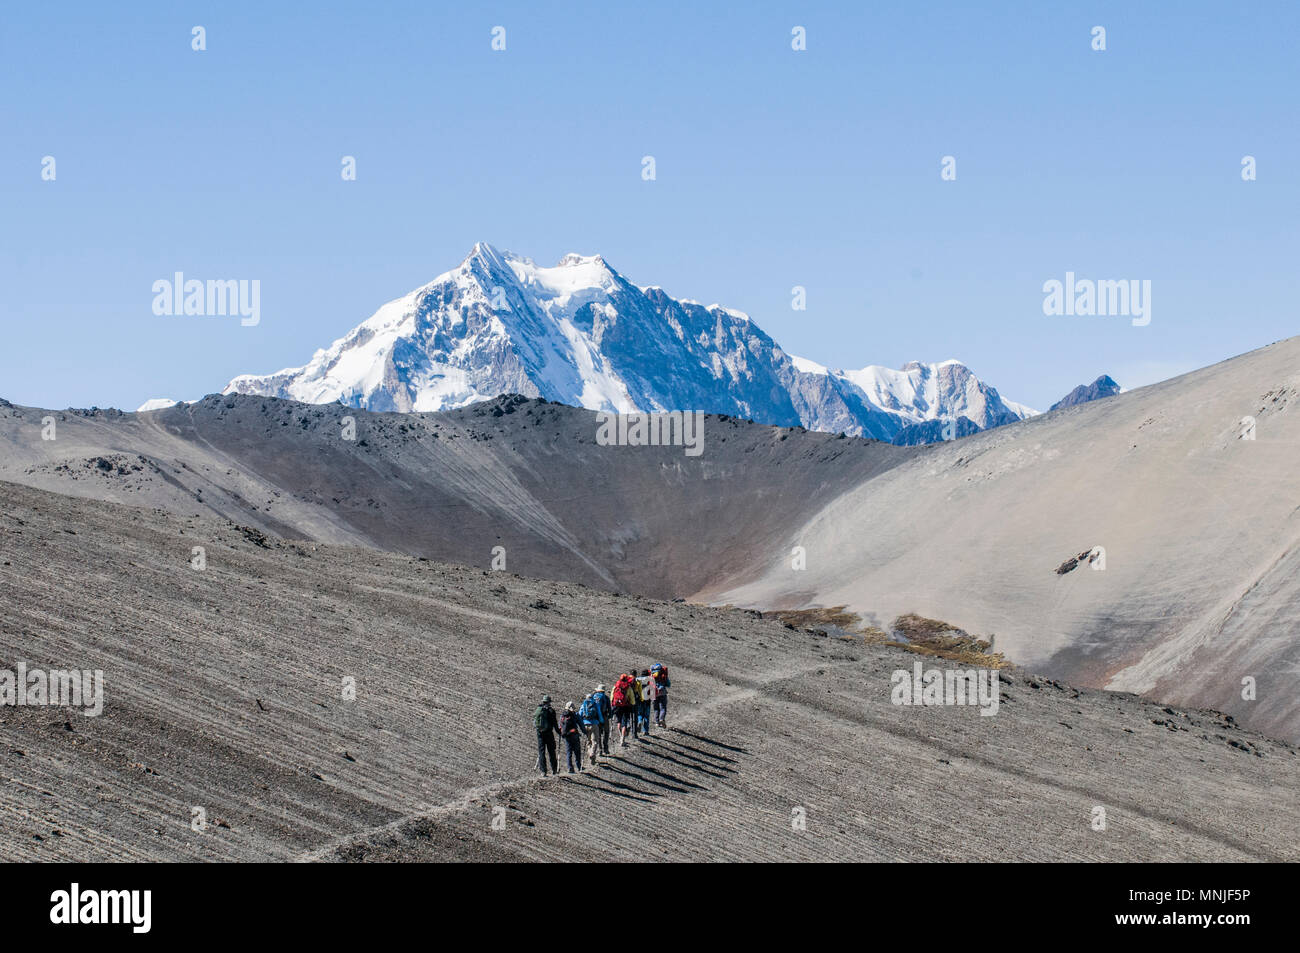 Treking in the Cordillera Real region of the Bolivian Andes with Huayan Potosi in the distance. - Stock Image